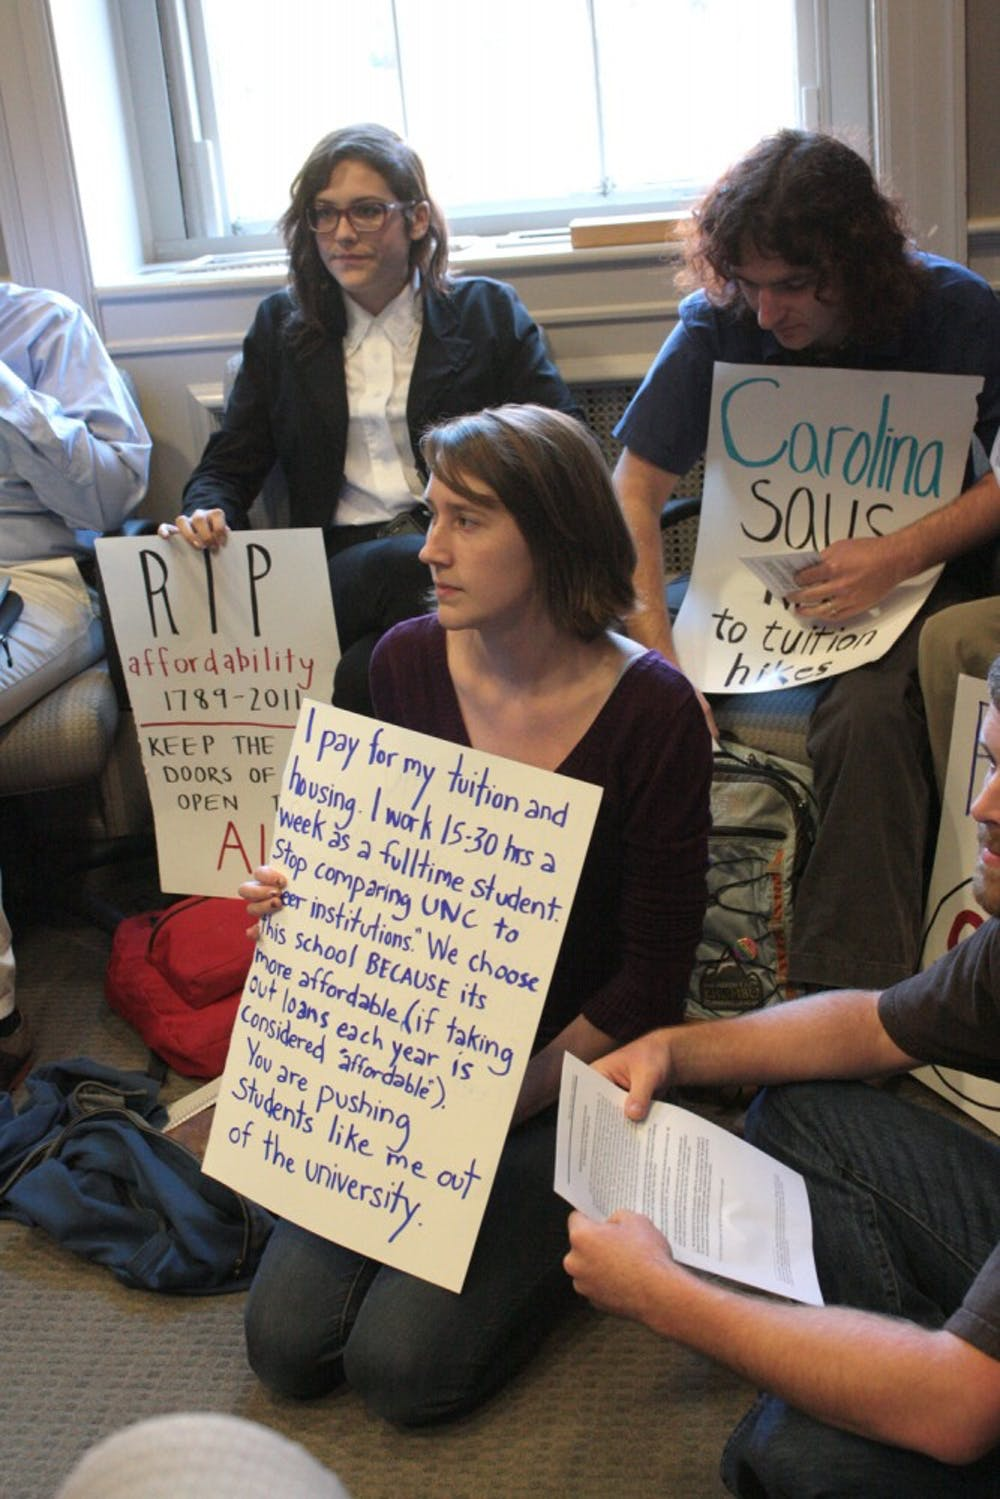 UNC administration approves tuition plan, leaves many dissatisfied